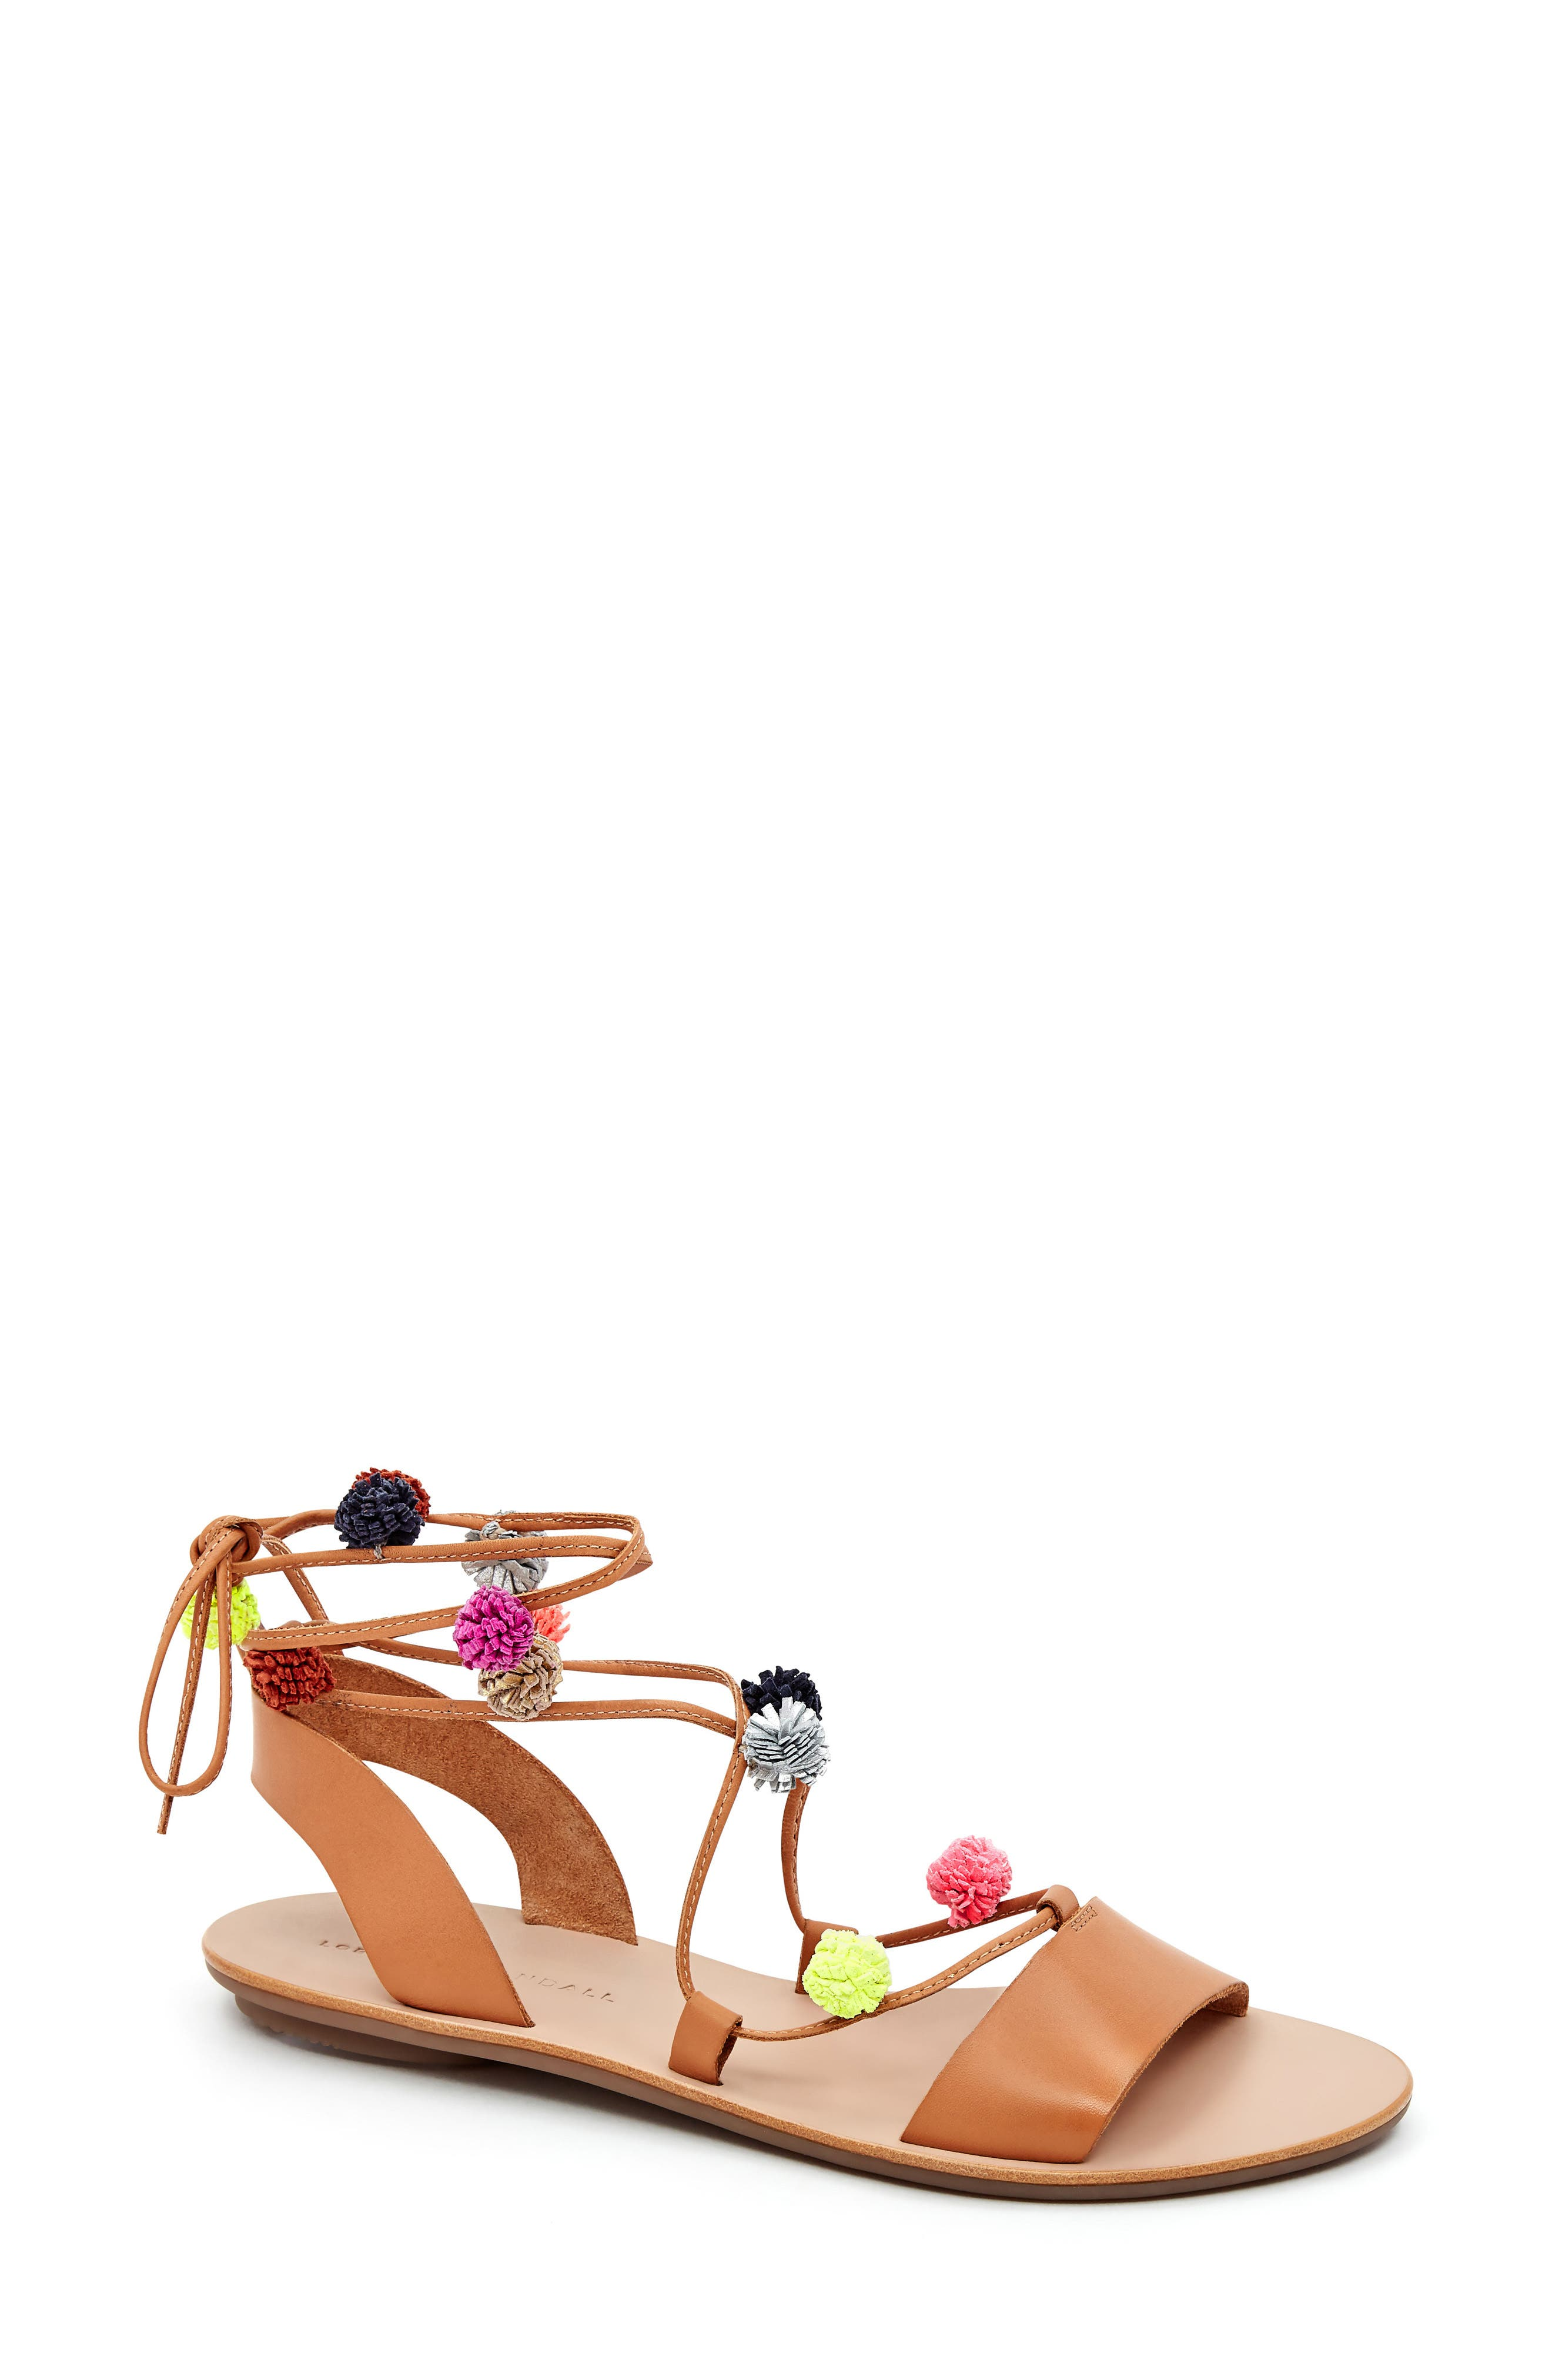 'Saskia' Flat Sandal,                         Main,                         color, 209